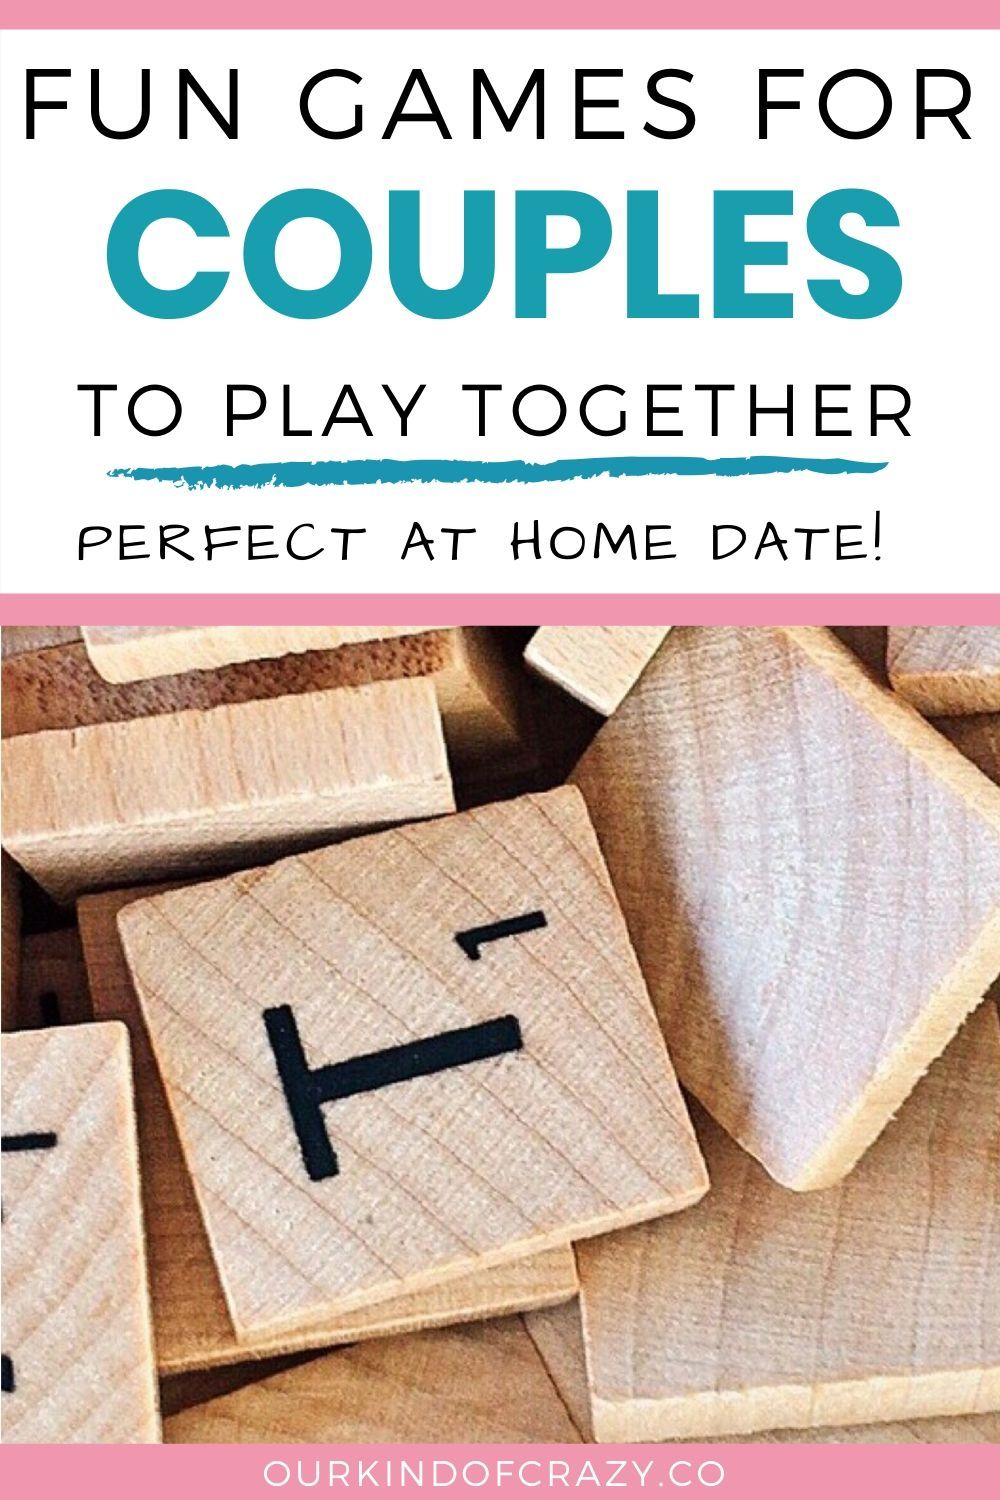 Games For Couples Best 2Player Games For Date Night in